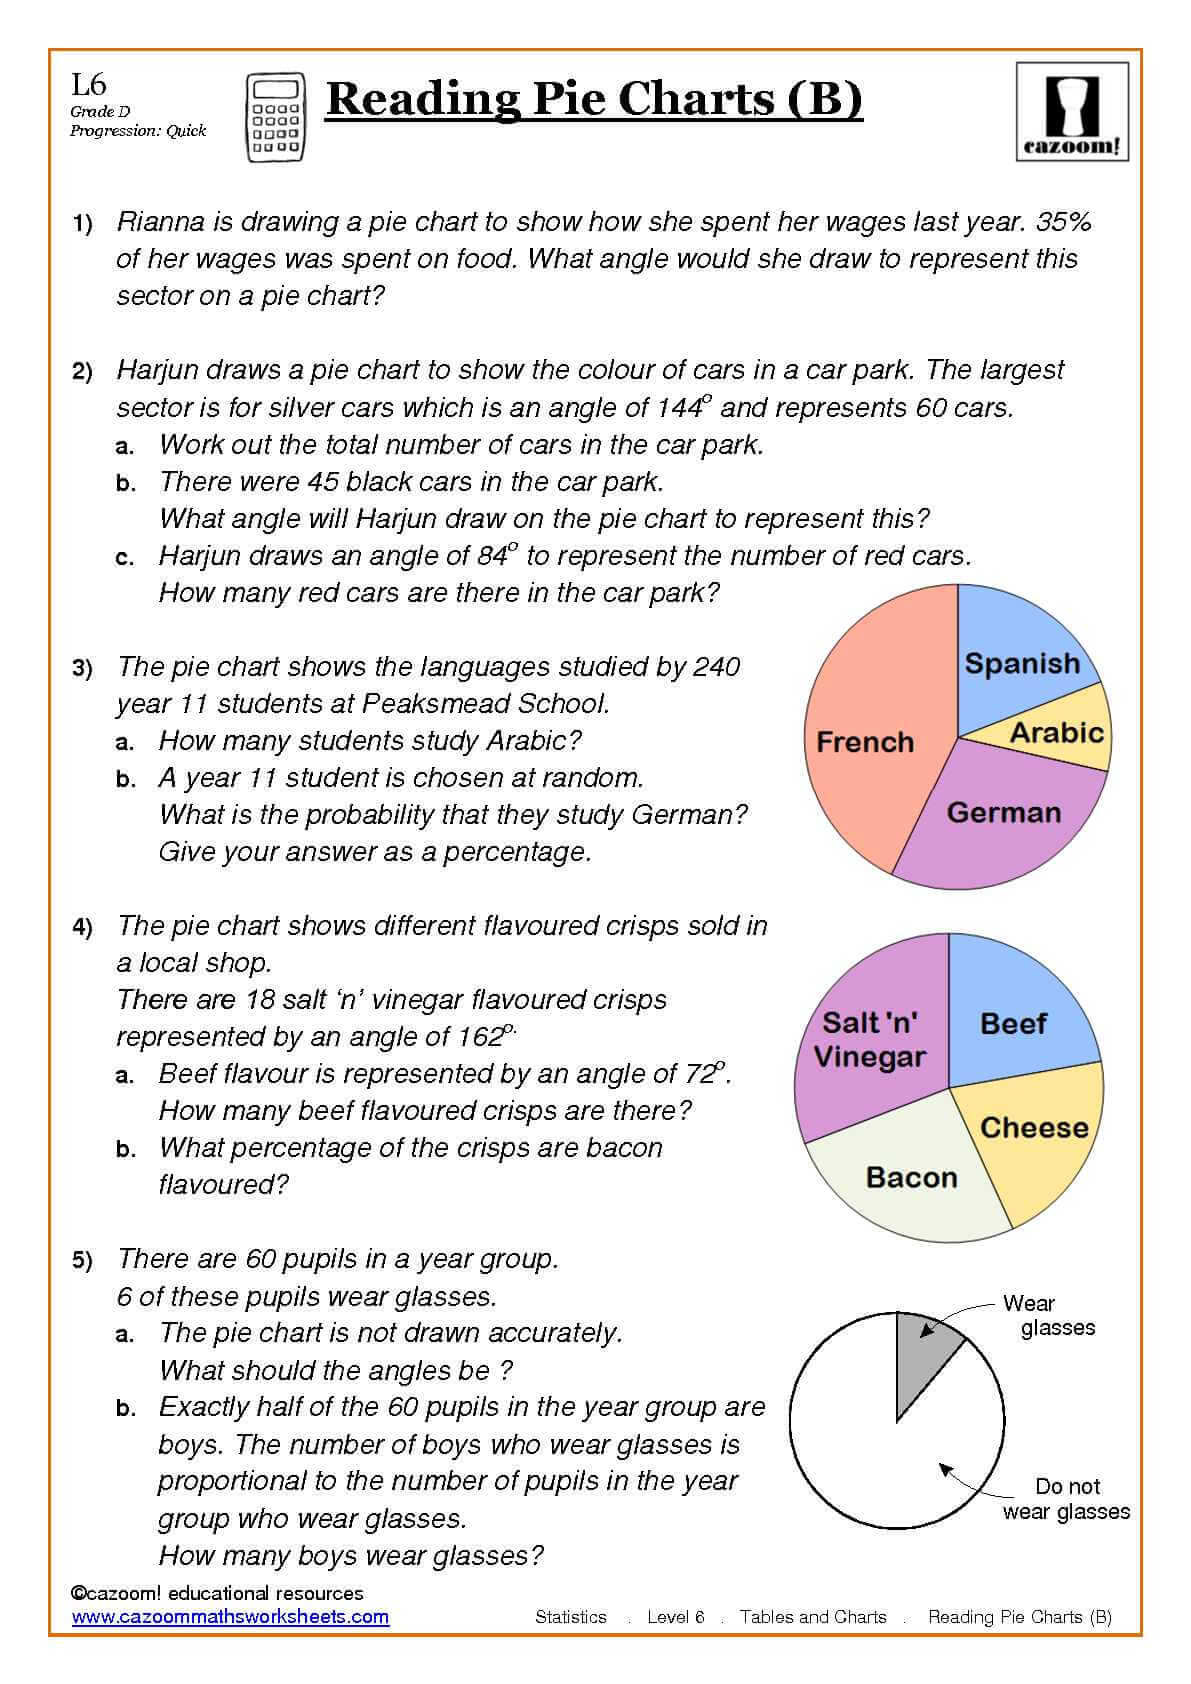 Statistics Maths Worksheets Ks3